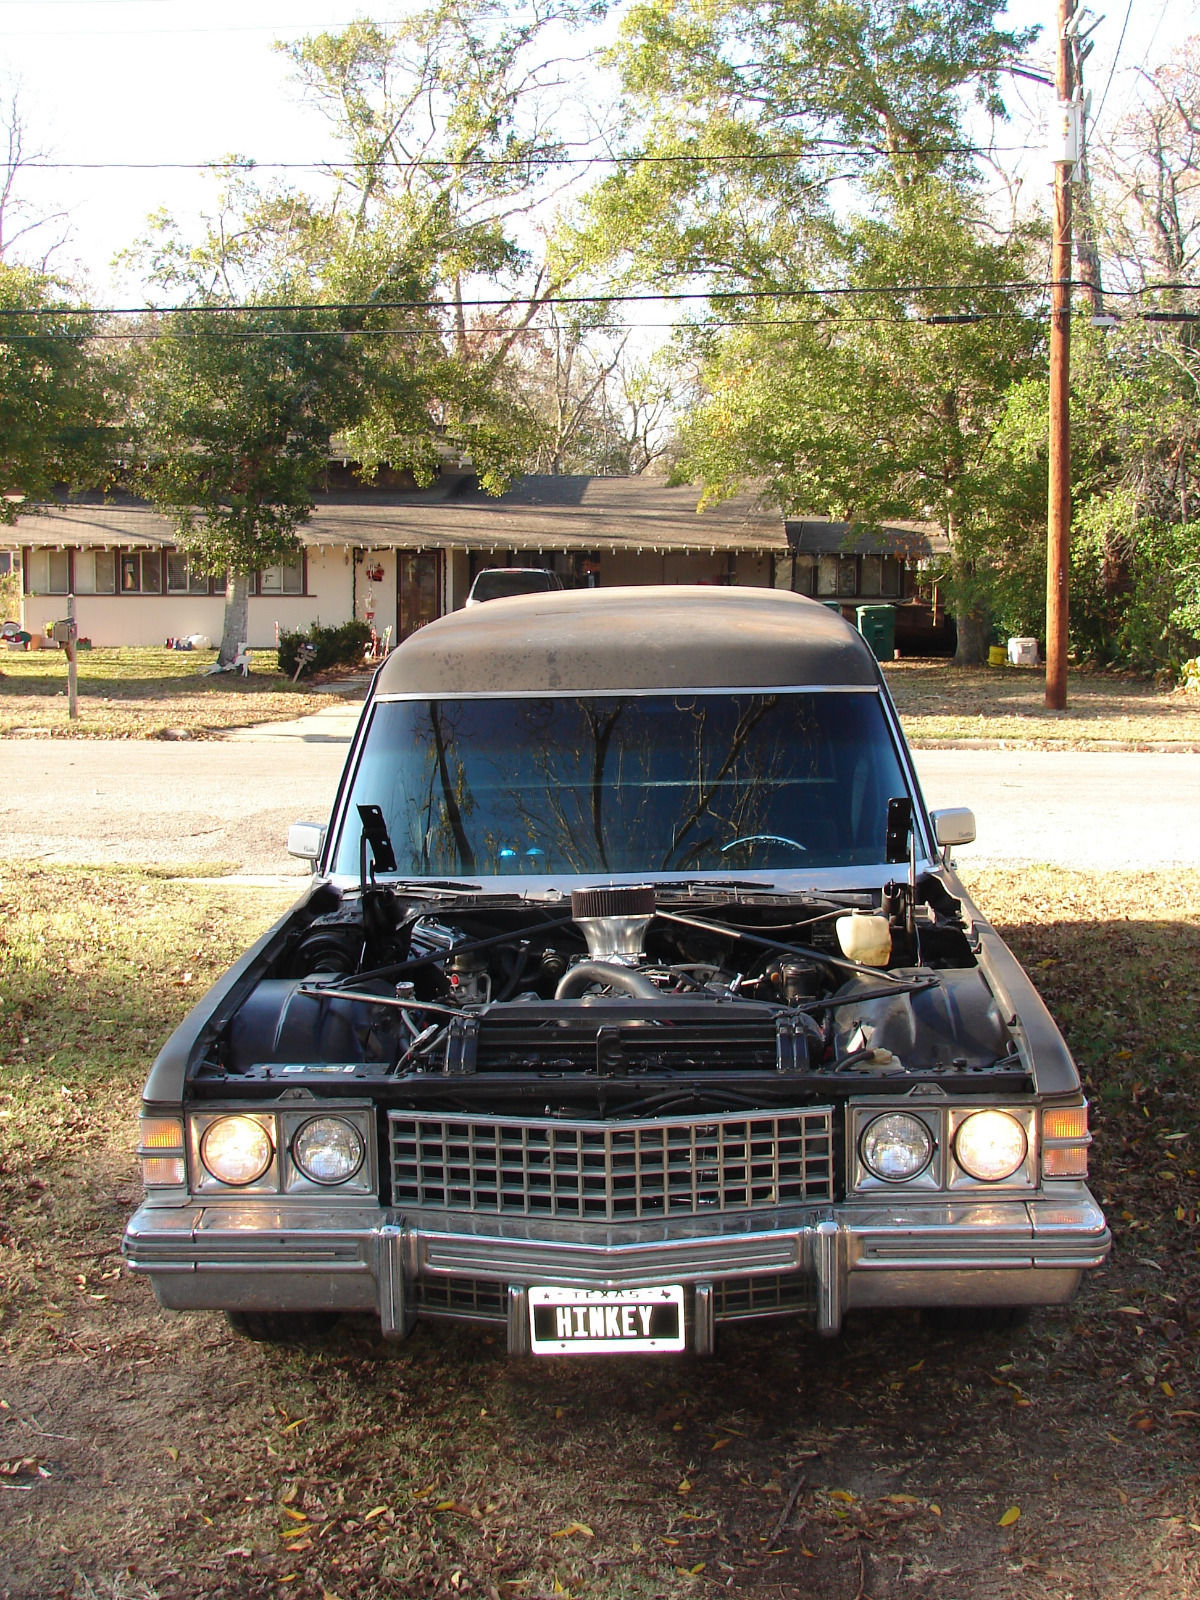 Rebuilt engine 1974 cadillac fleetwood superior hearse for for Reconditioned motors for sale